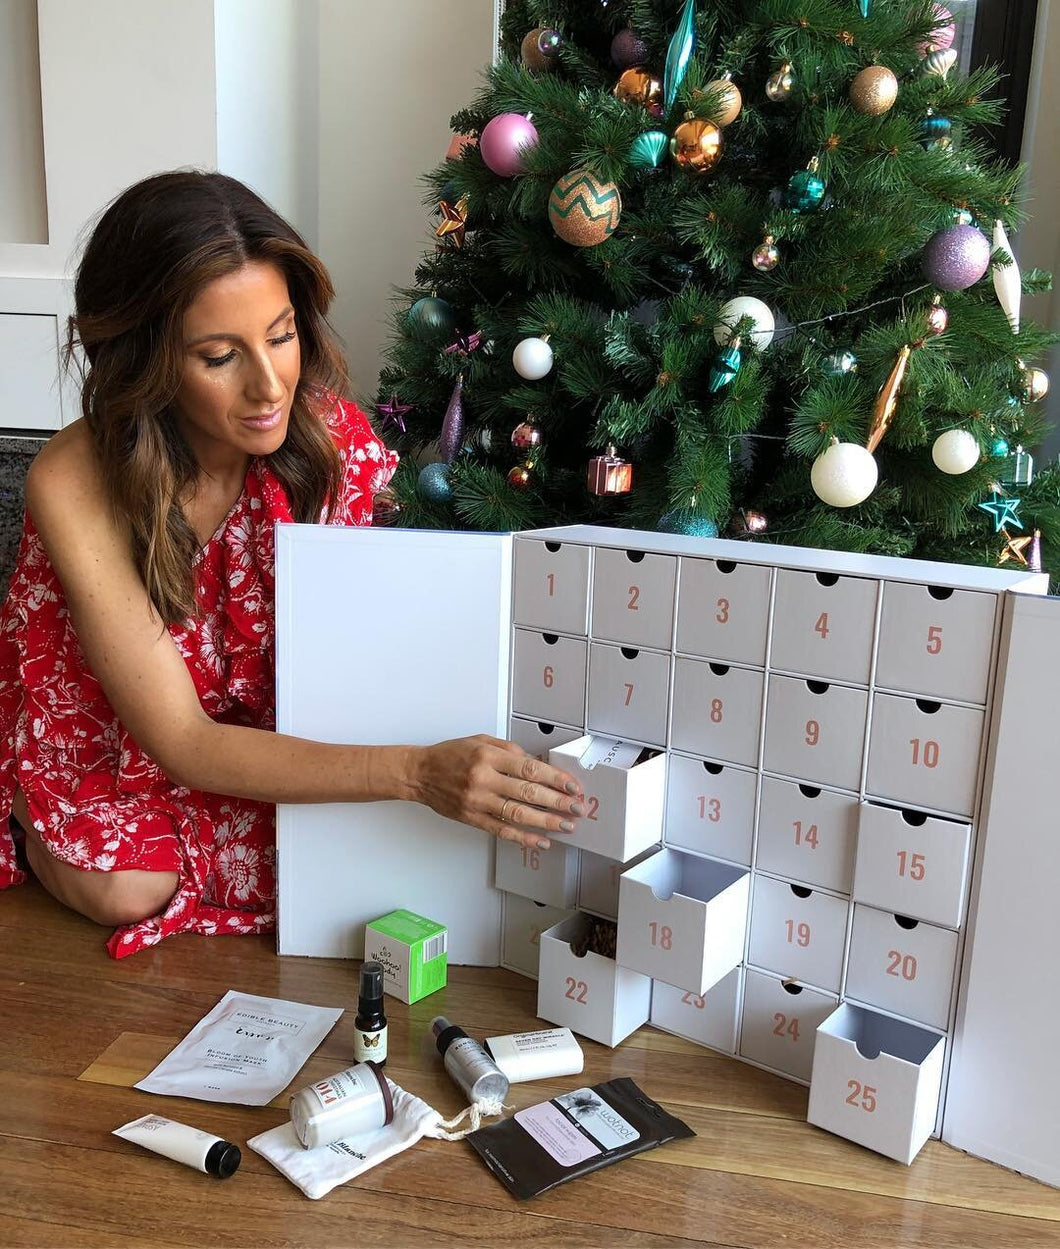 Lana Wilkinson enjoying The Beauty Advent Calendar